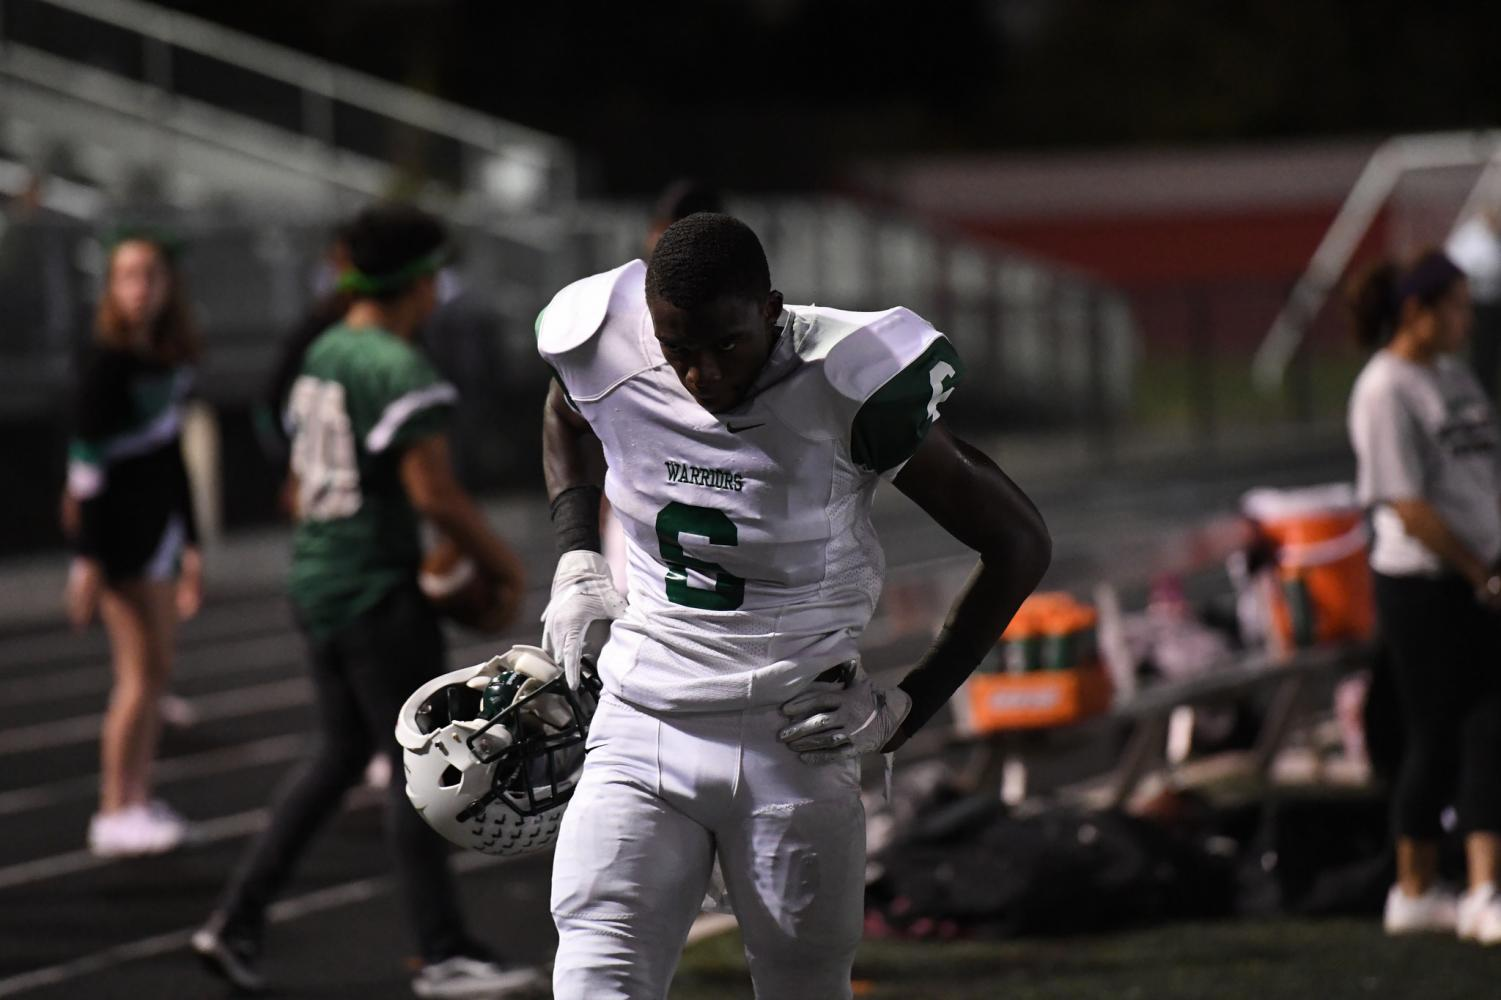 Senior Jaleel Prather steps off the field in between possessions to catch his breath.